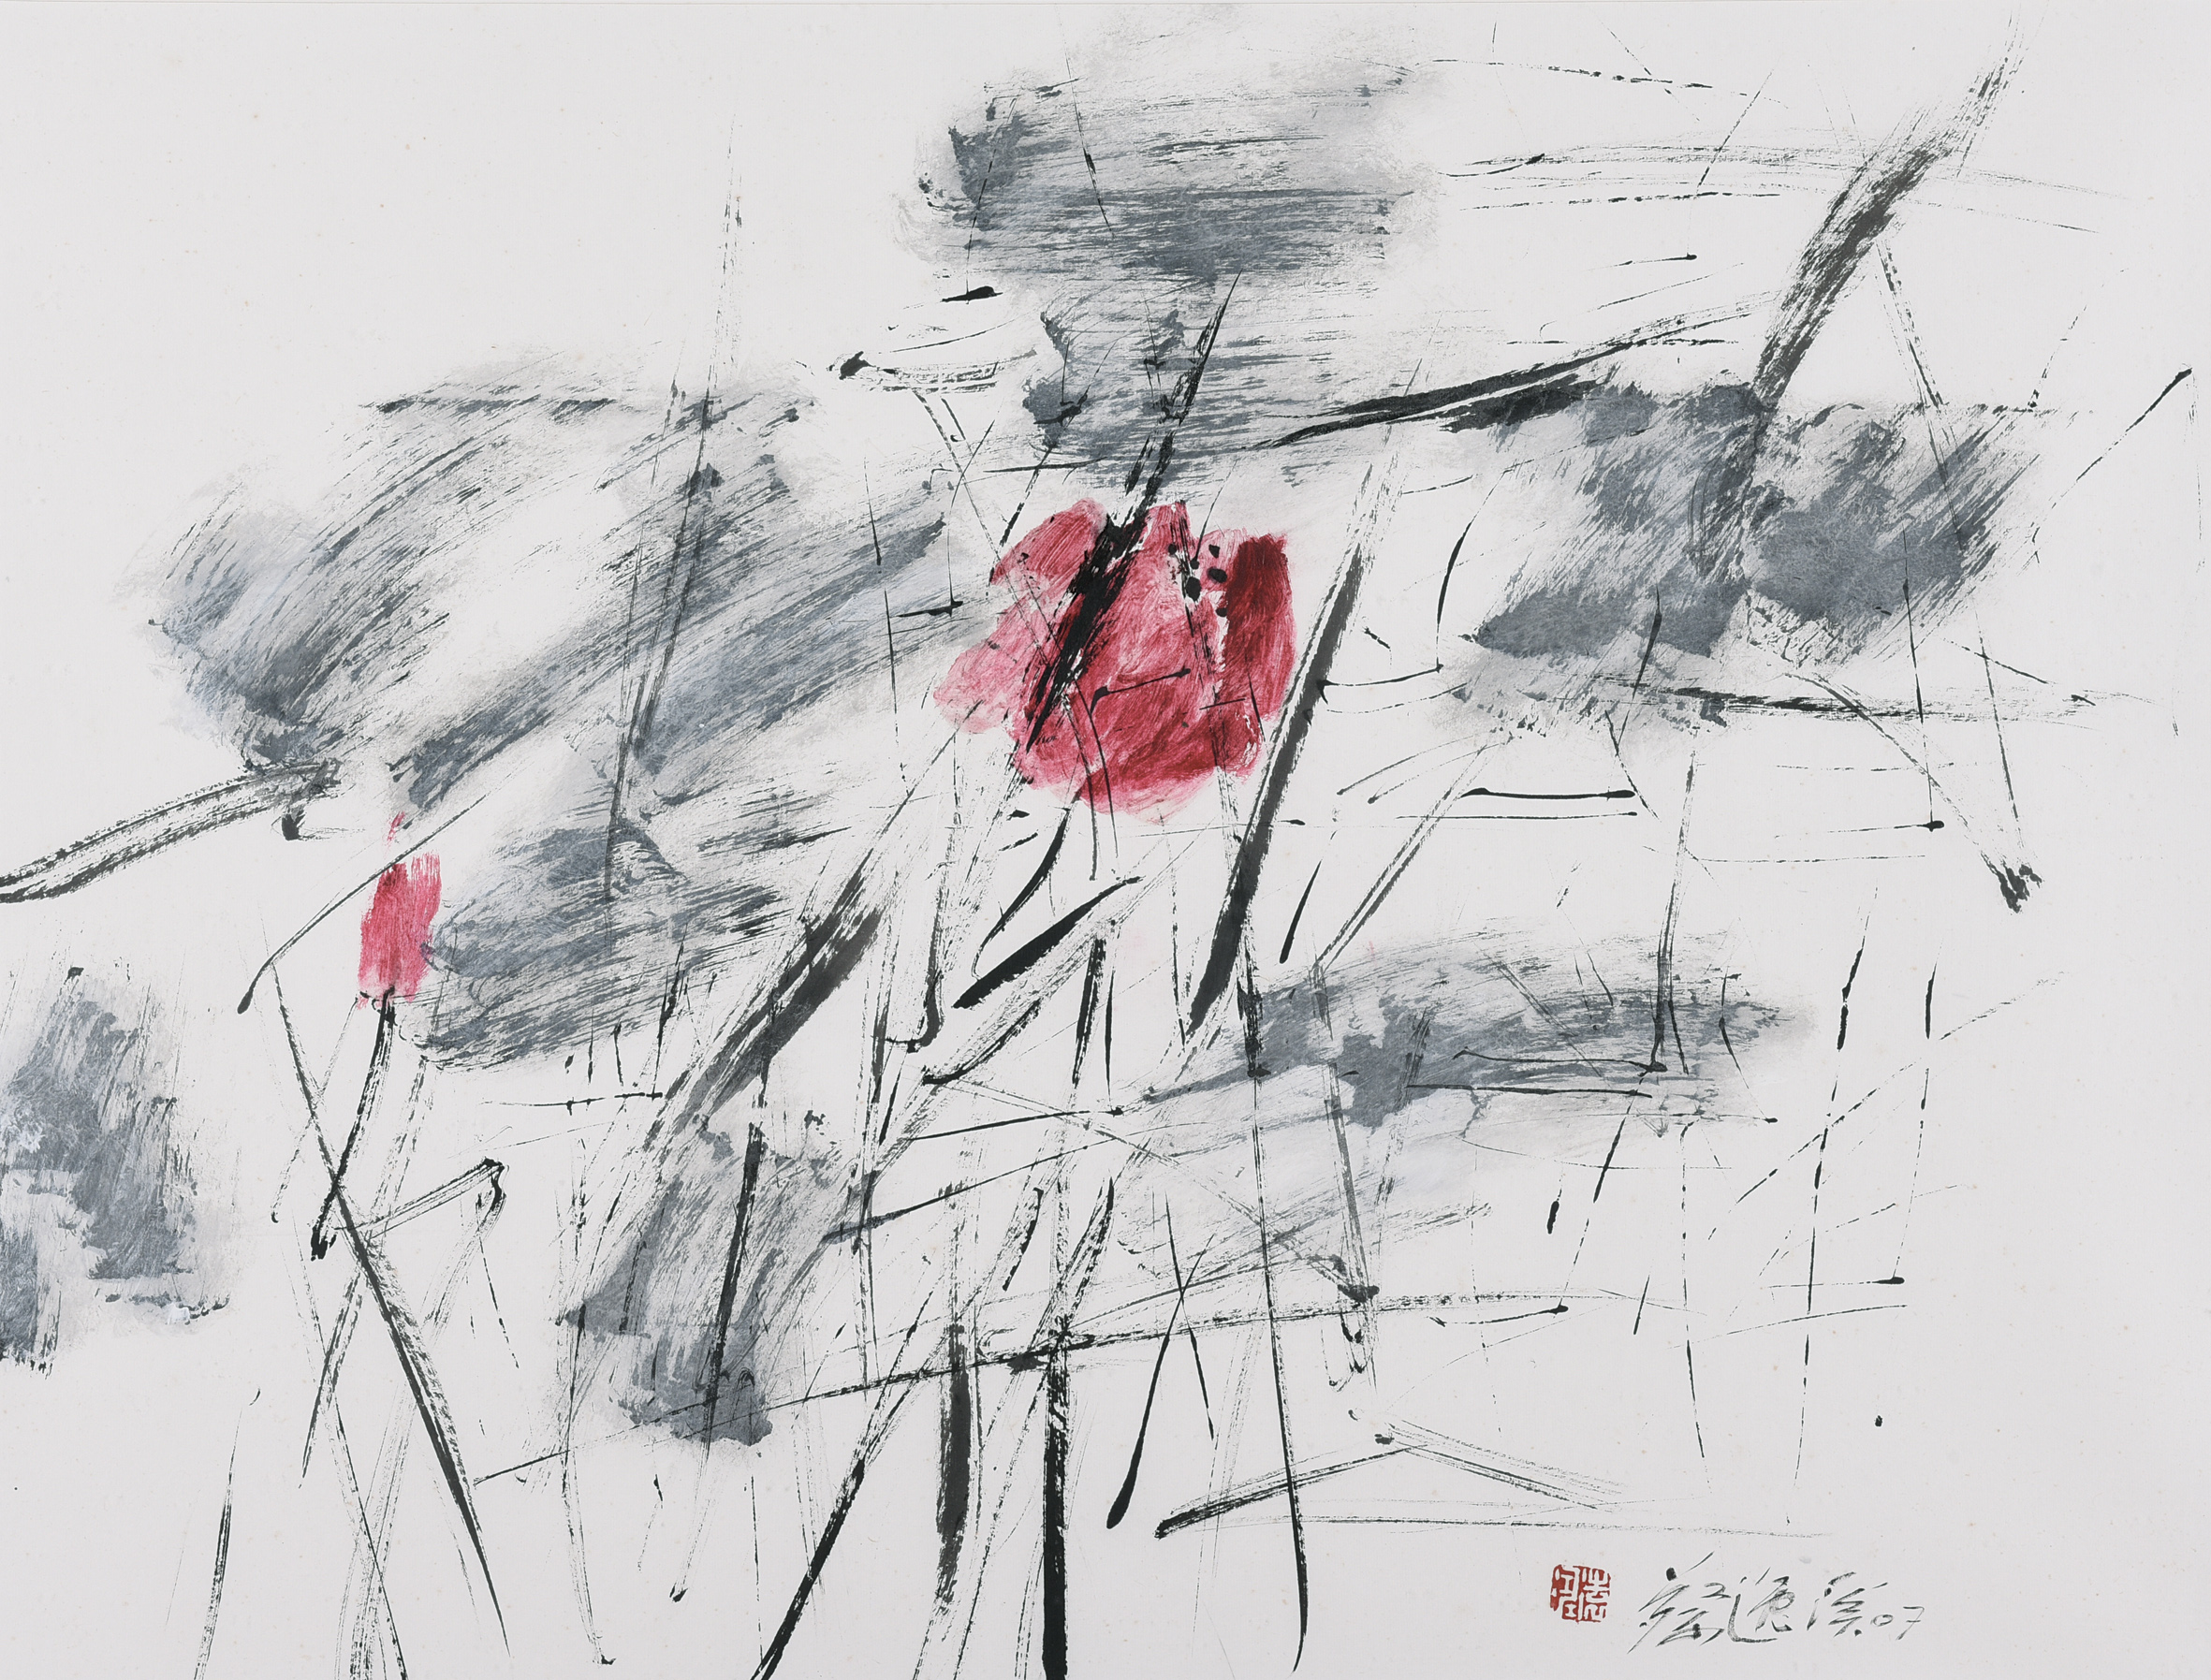 Chua Ek Kay, Lotus in Red 2, ink and colour on paper, 52 x 68 cm, 2007